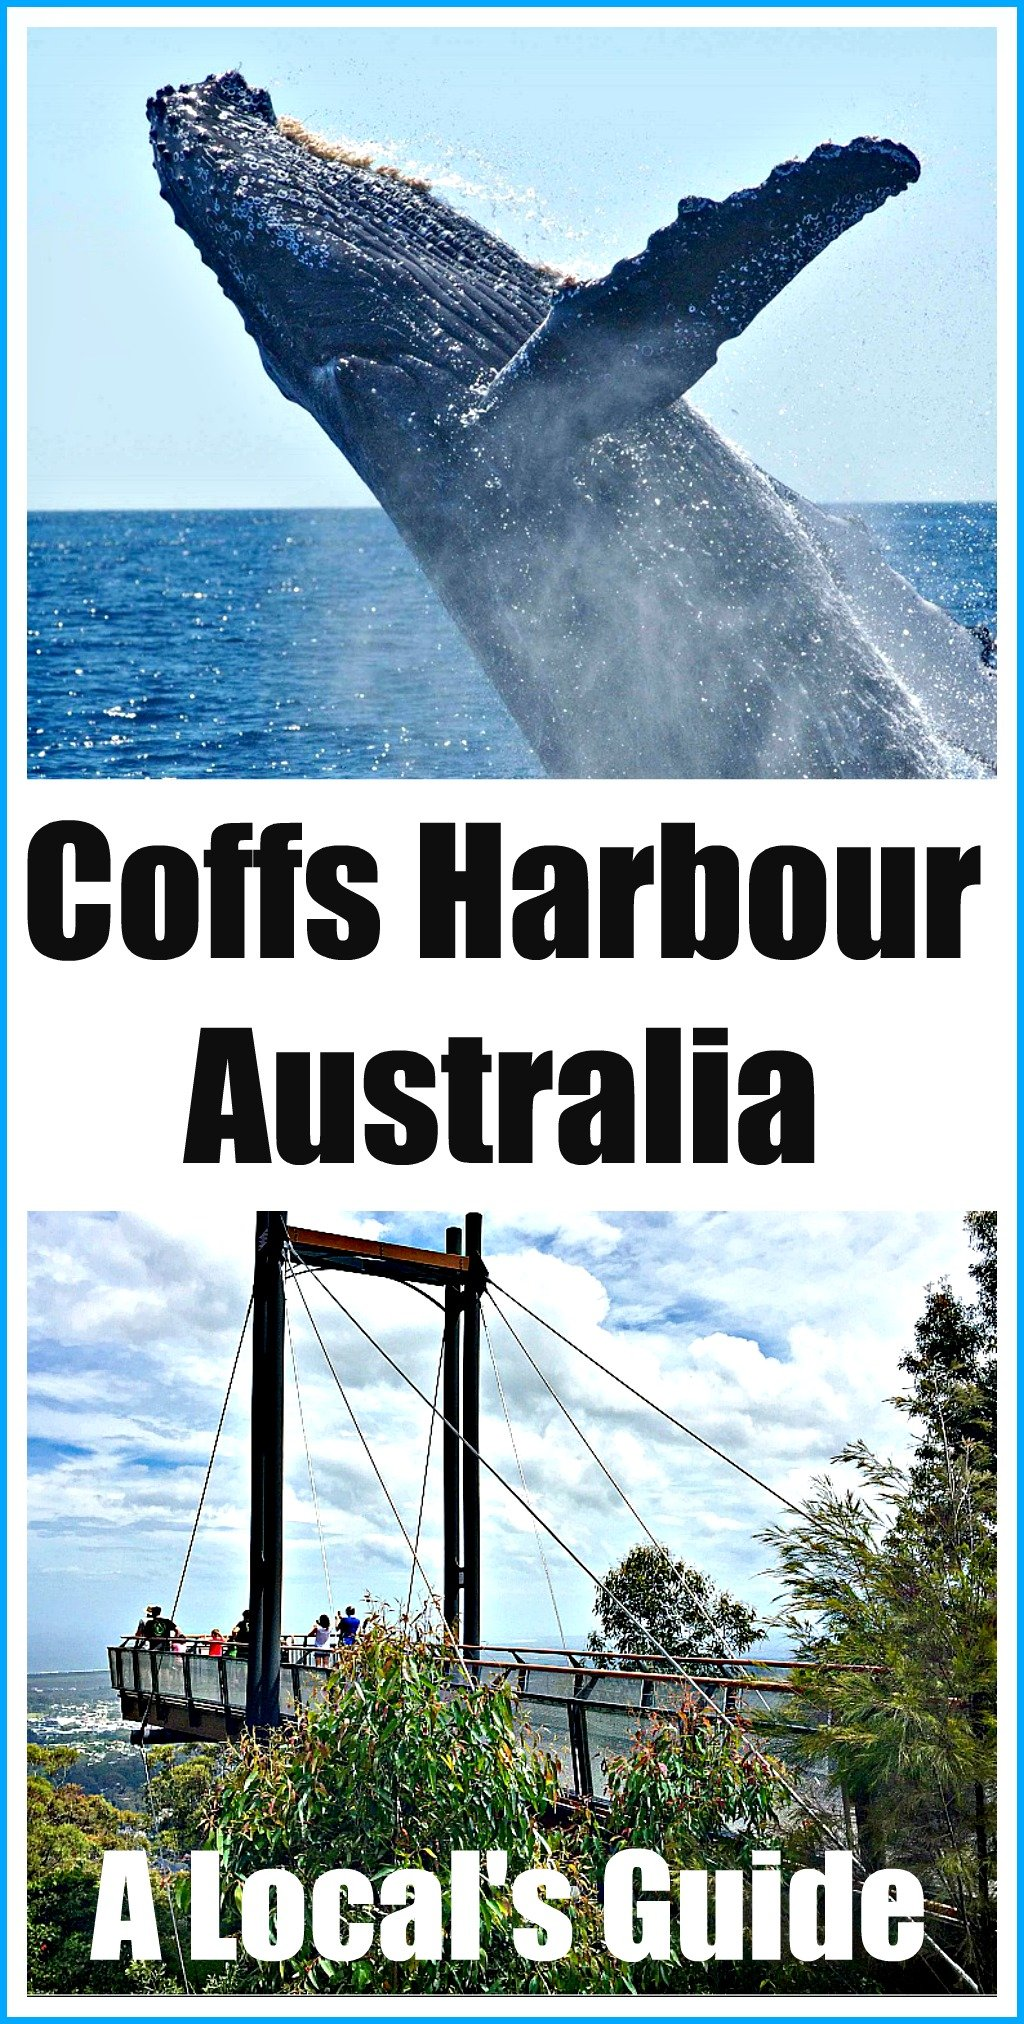 Coffs Harbour Australia A Local's Guide